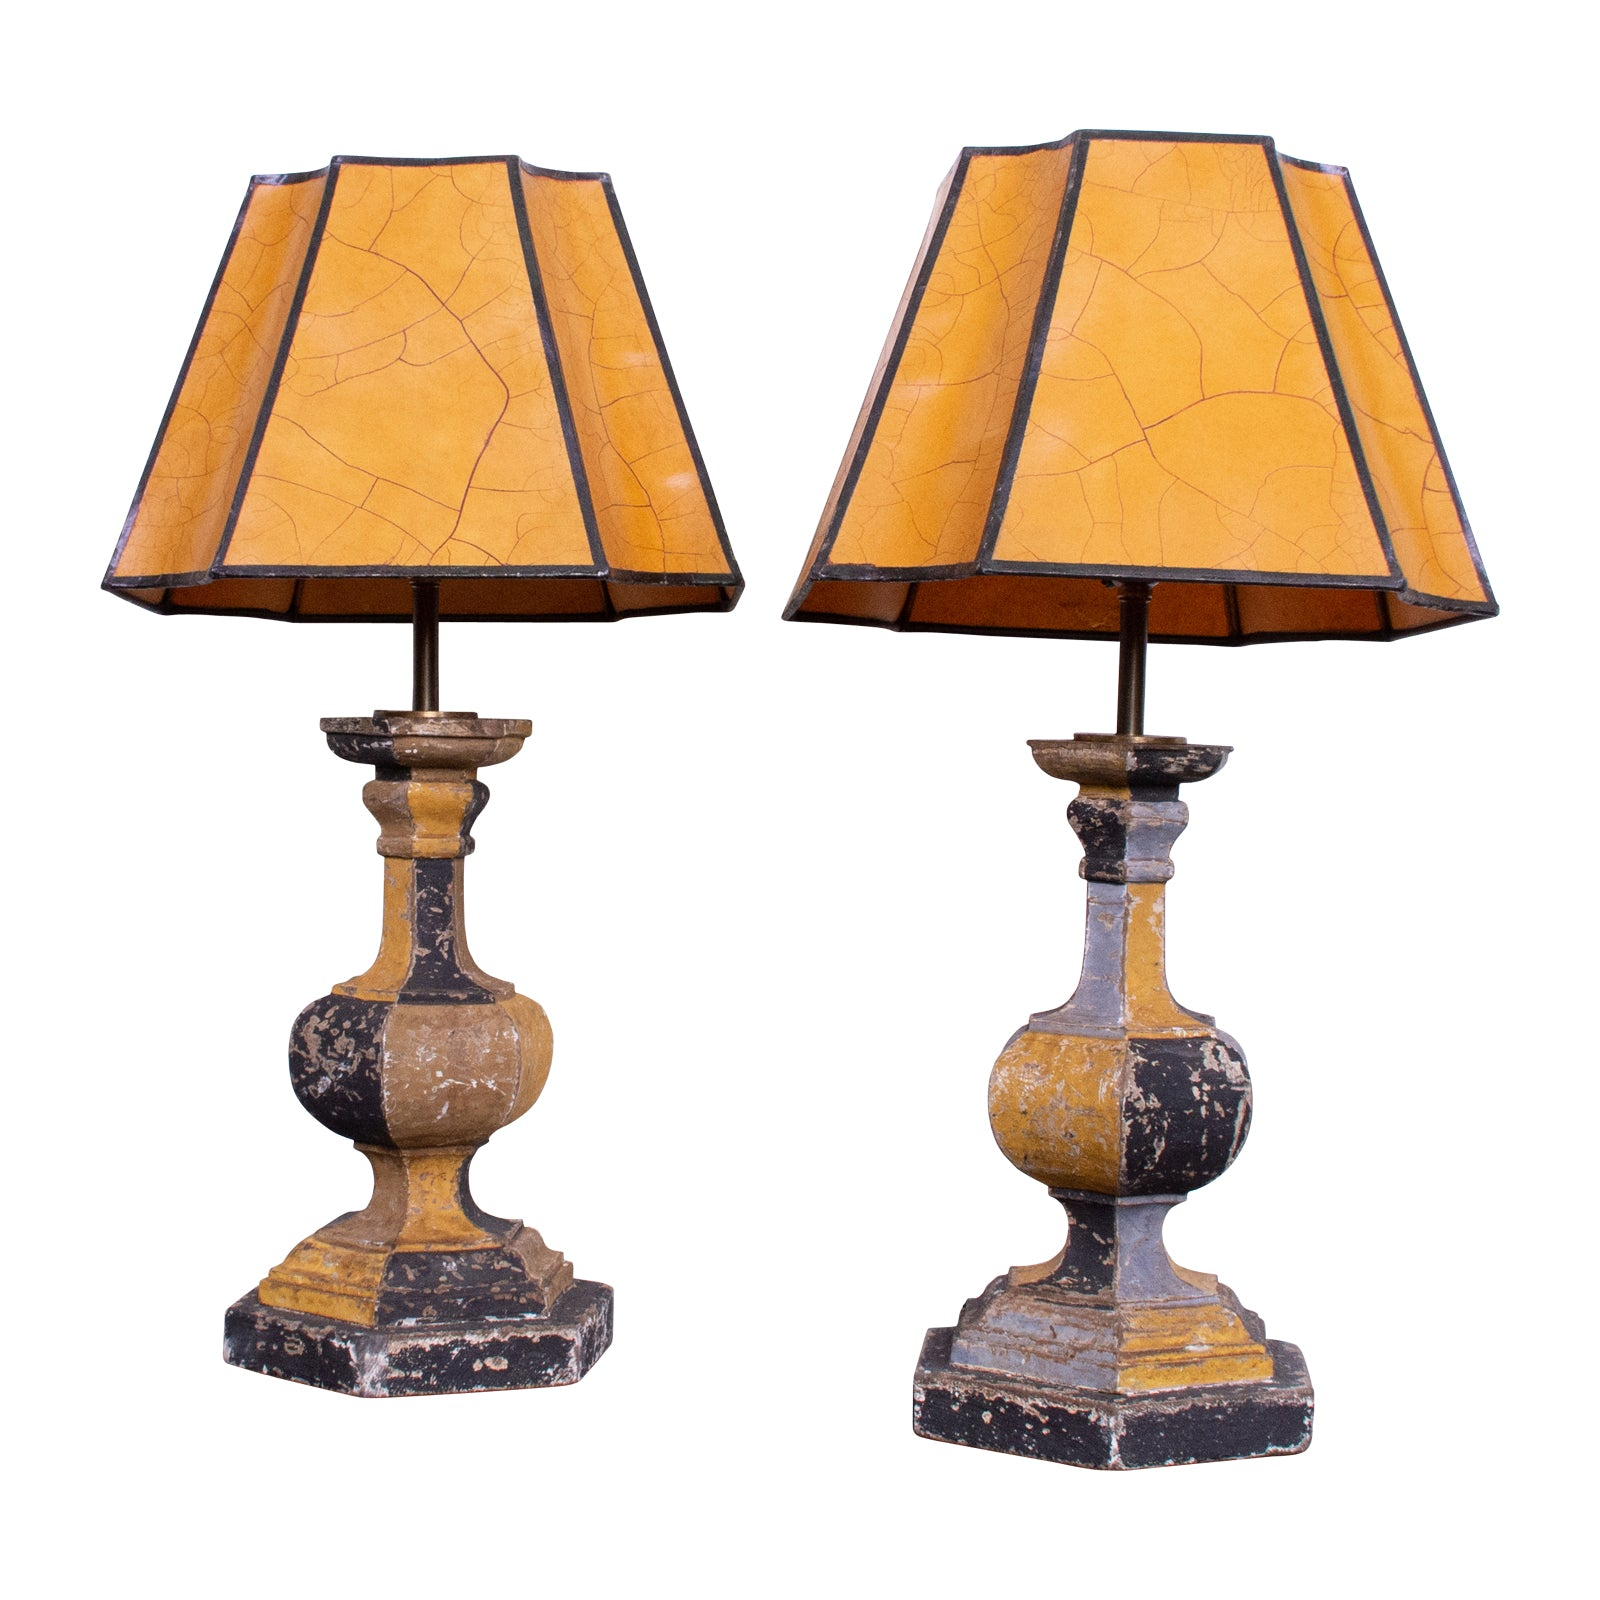 Pair of Squat Checkered Table Lamps